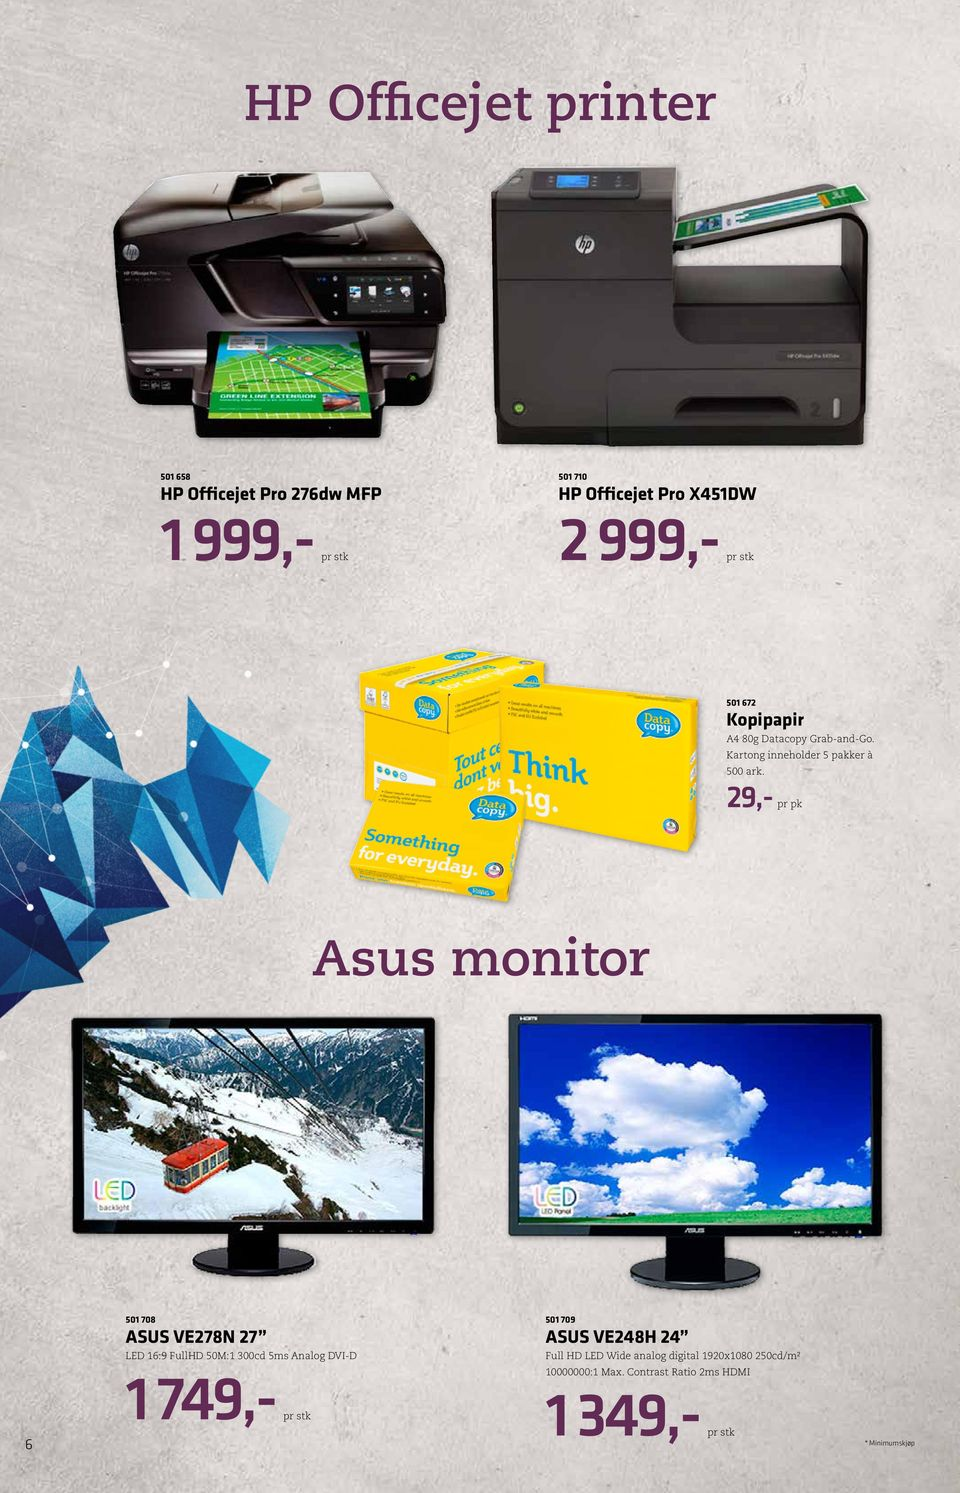 29,- pr pk Asus monitor 6 501 708 ASUS VE278N 27 LED 16:9 FullHD 50M:1 300cd 5ms Analog DVI-D 1 749,- pr stk